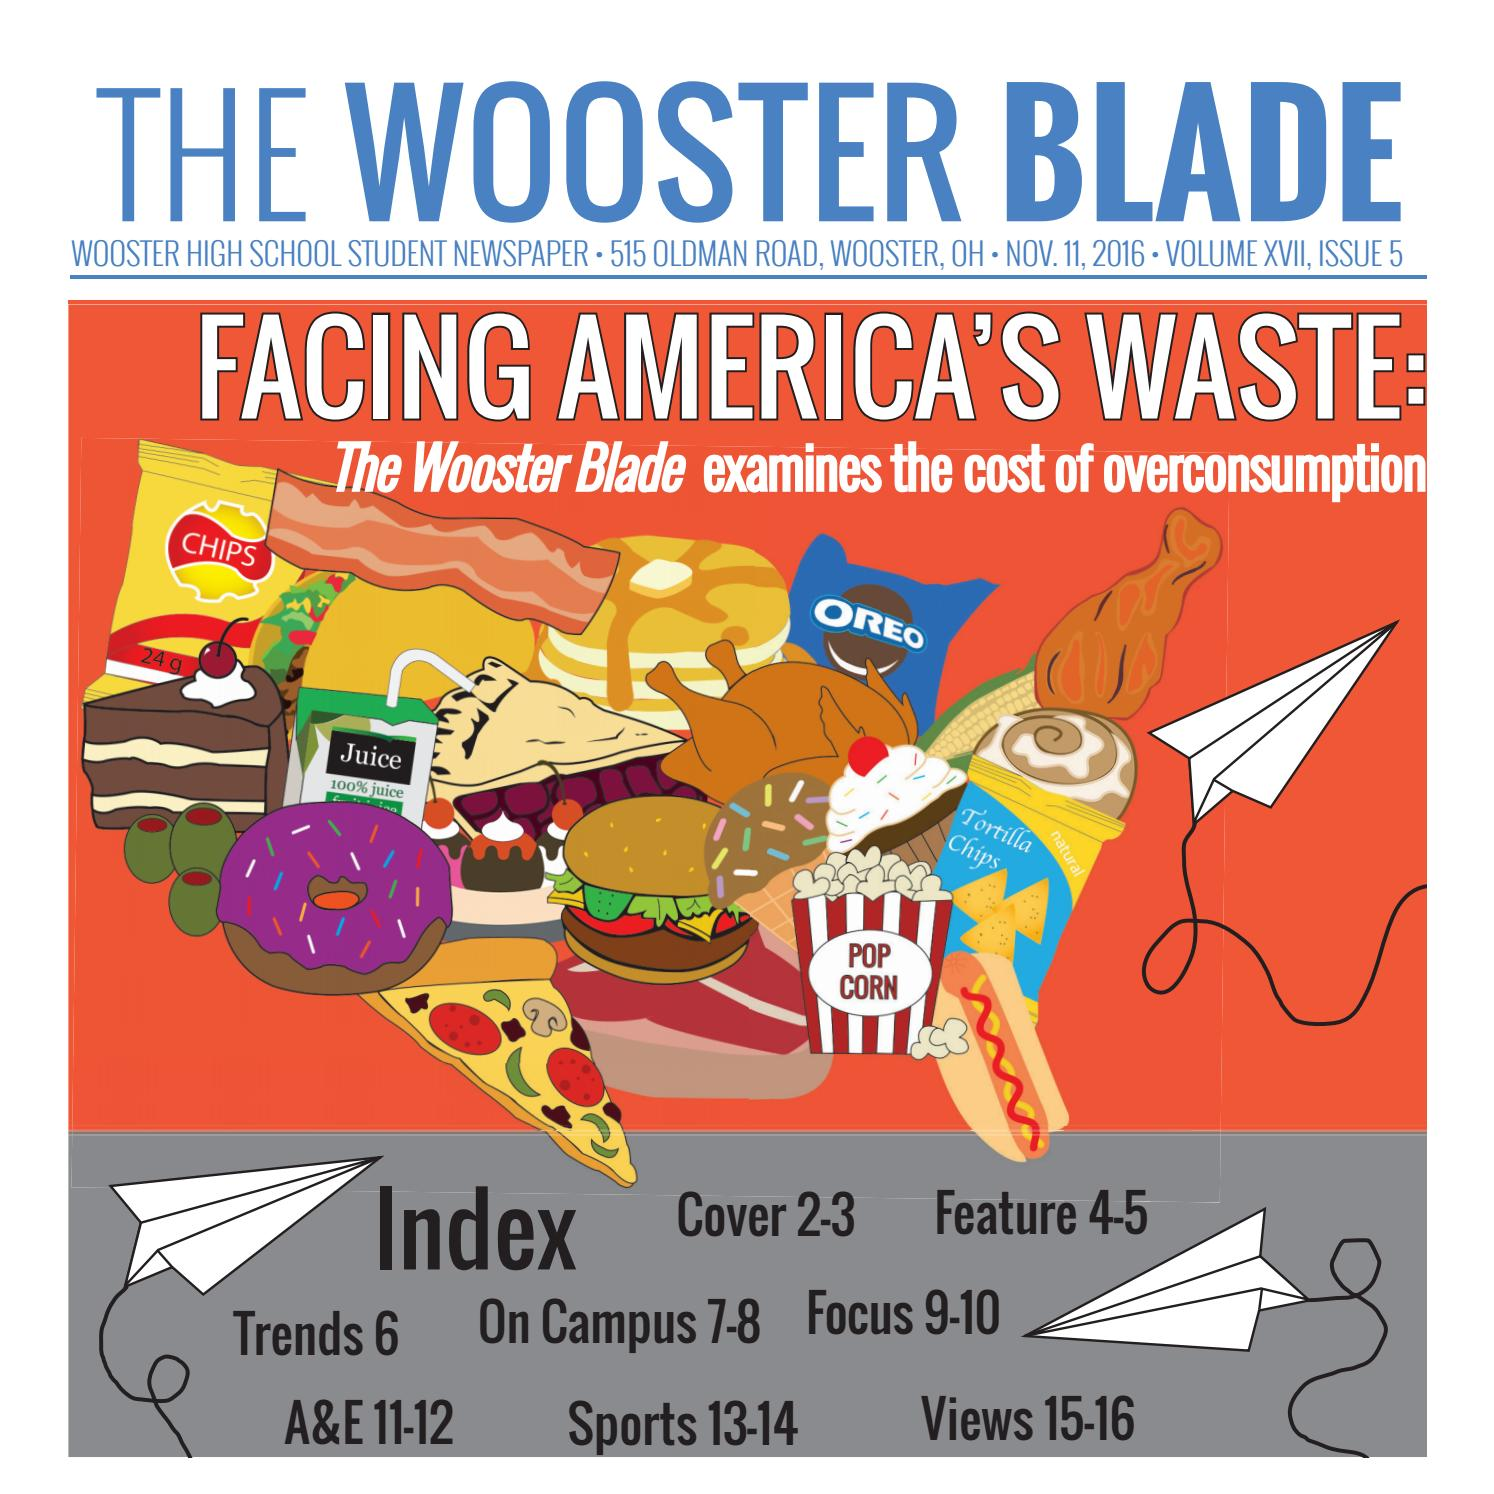 the wooster blade, volume xvii, issue 5 by the wooster blade issuu